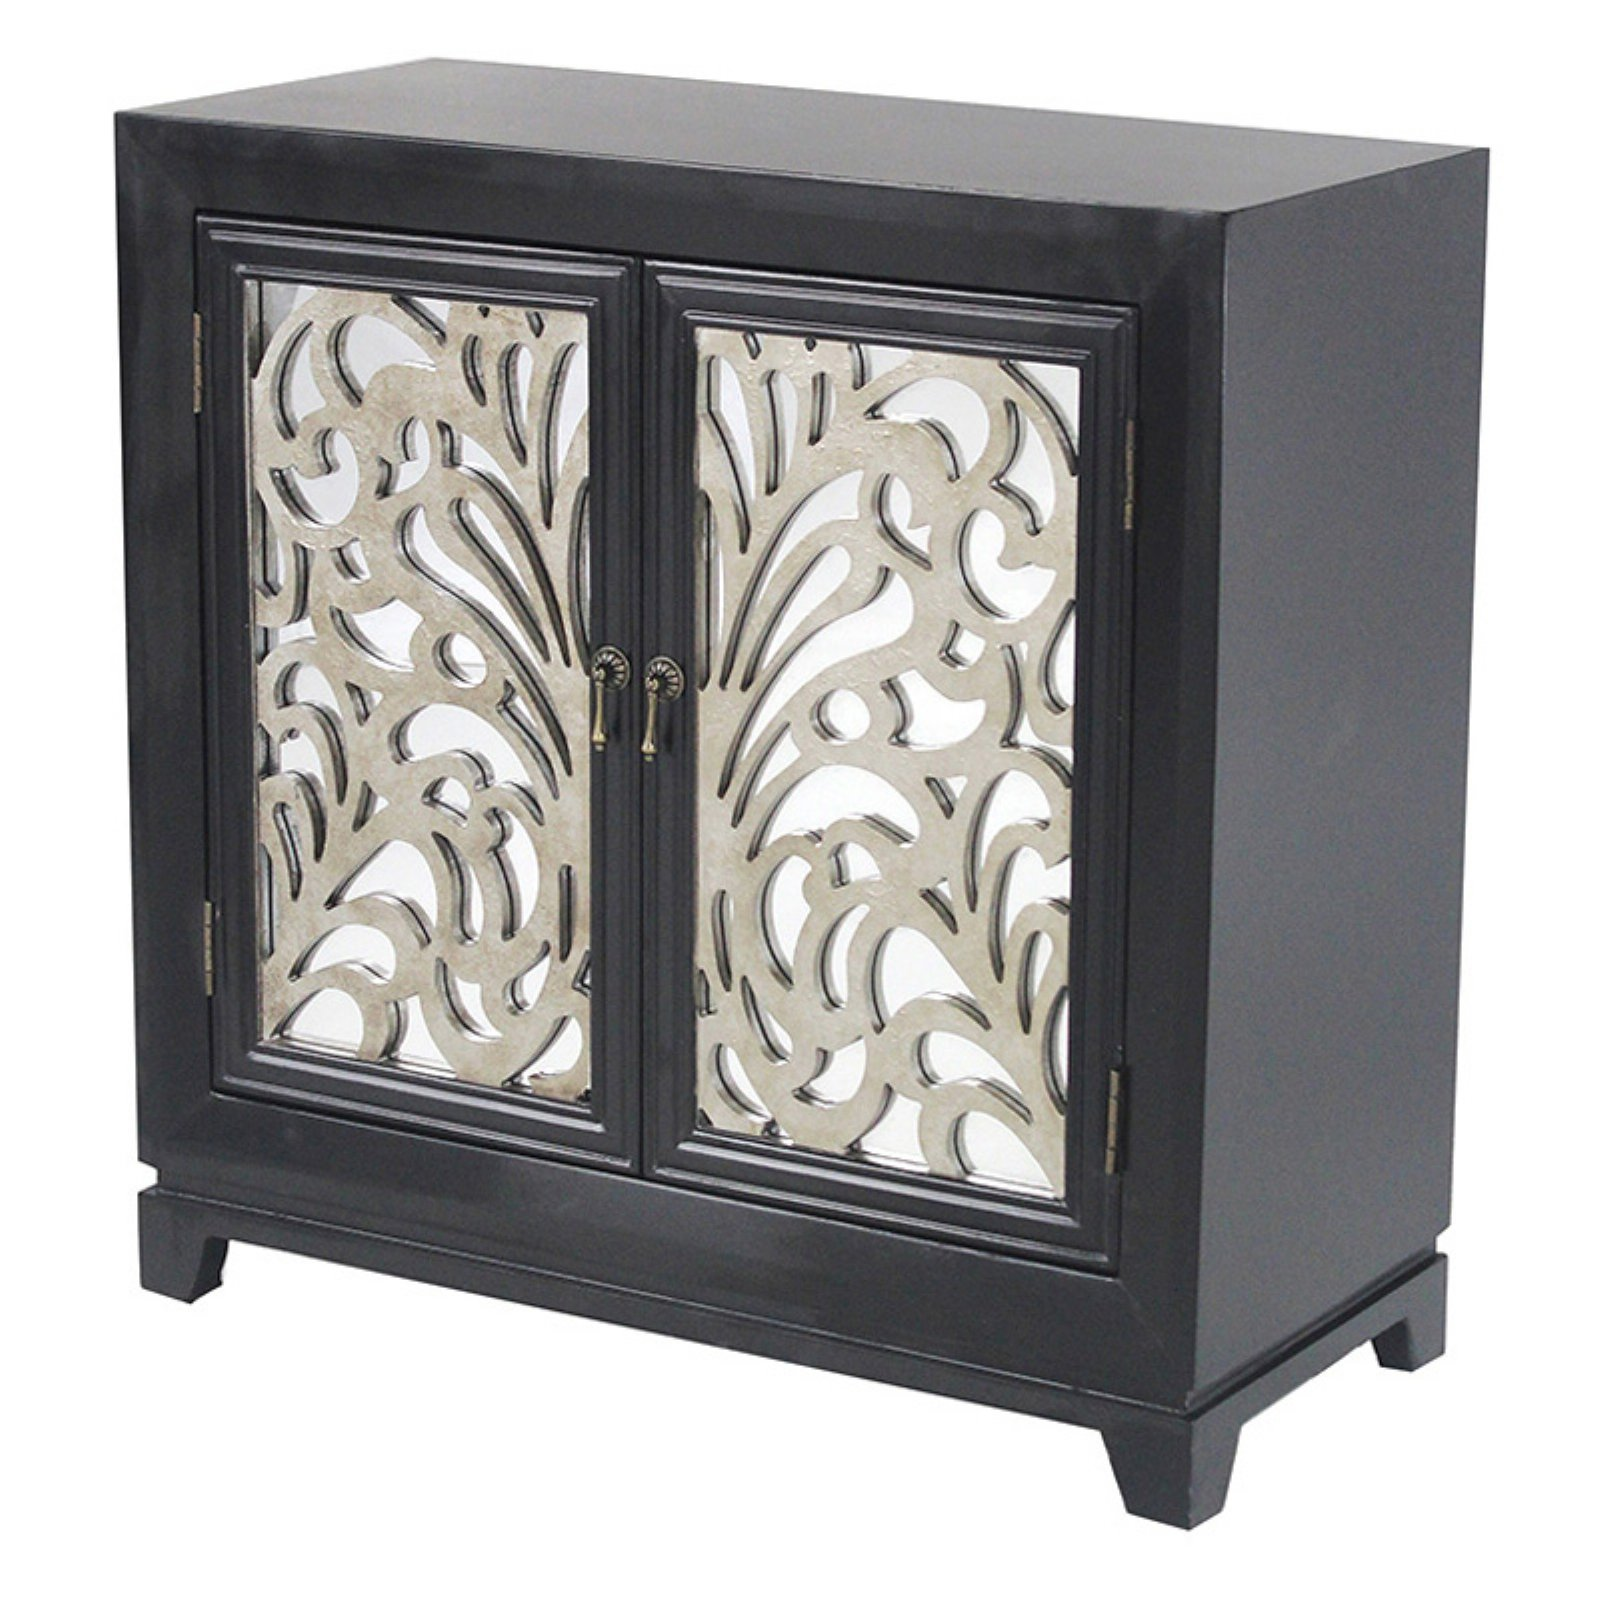 Heather Ann Creations Marrakesh Floral Sideboard with Mirror Inserts